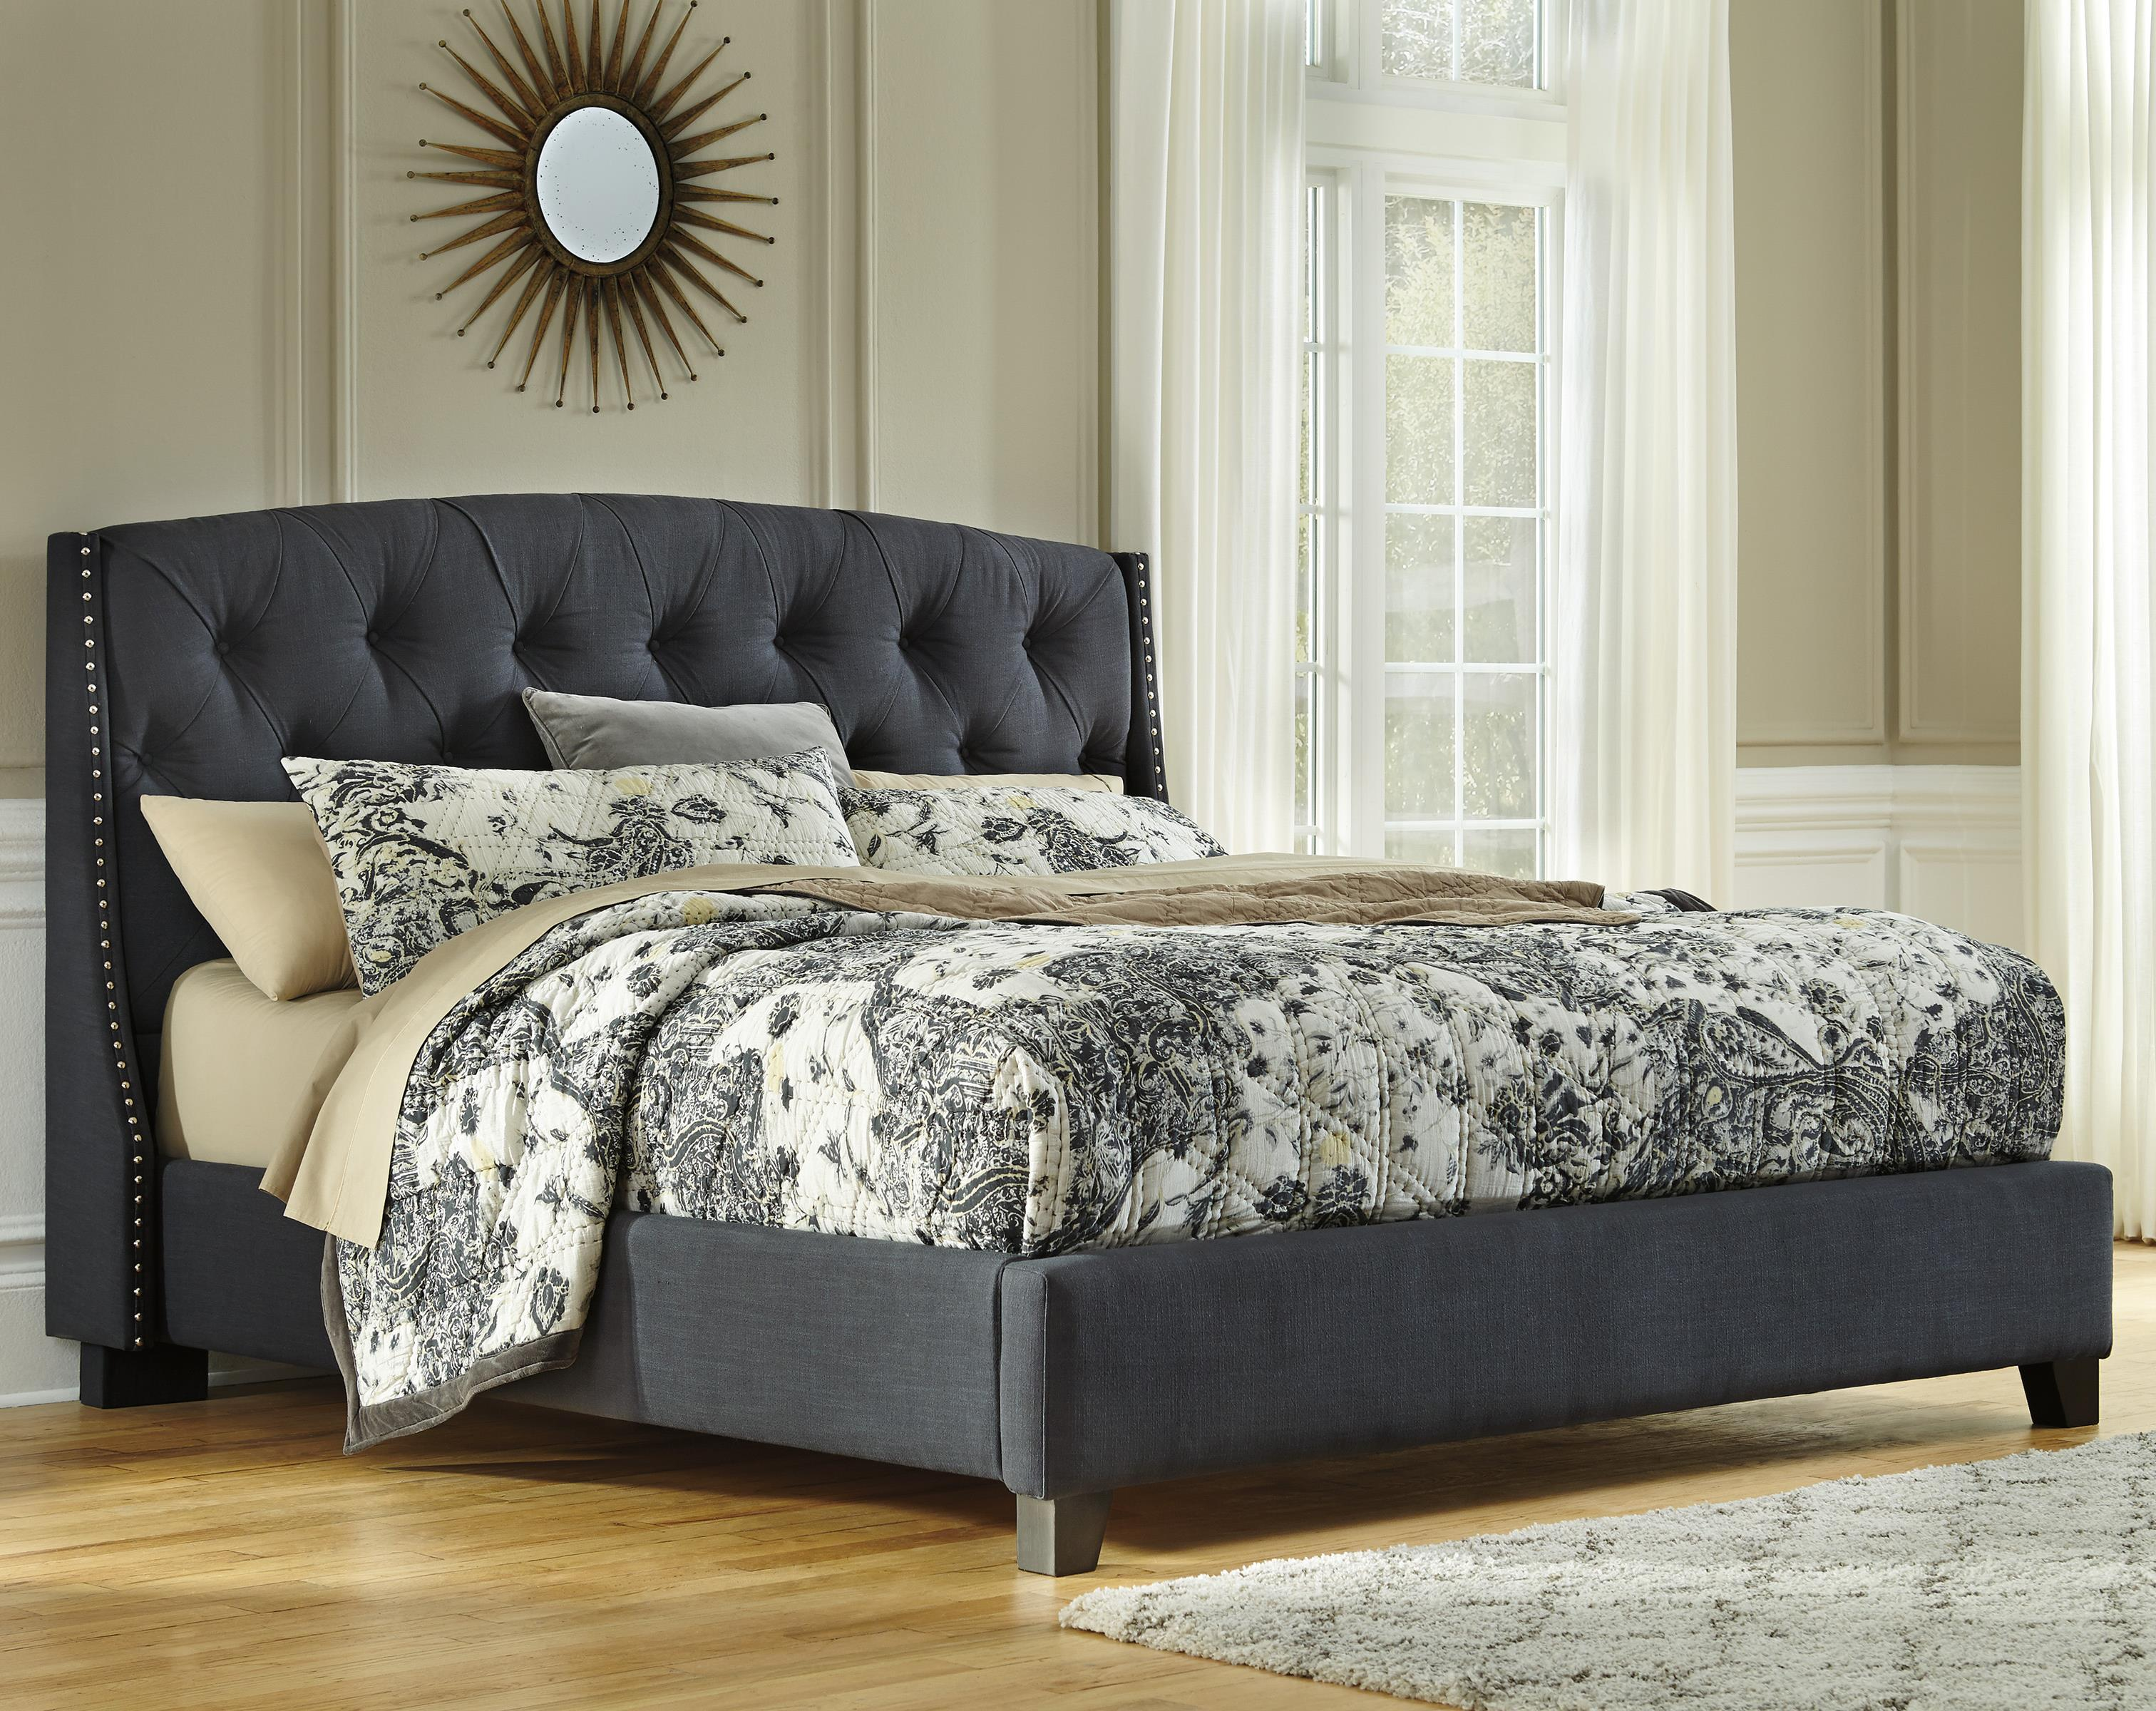 Queen upholstered bed in dark gray with tufting and nailhead trim by signature design by ashley for Bedroom sets with upholstered headboards